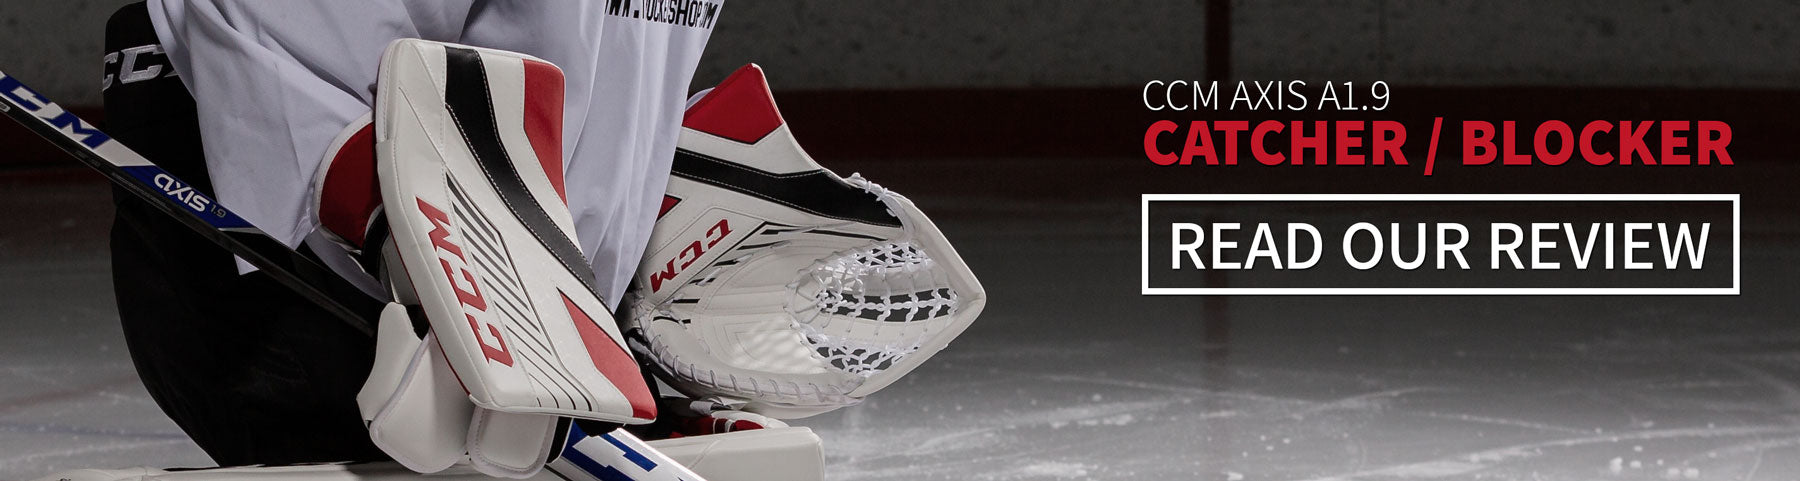 CCm axis 1.9 glove review